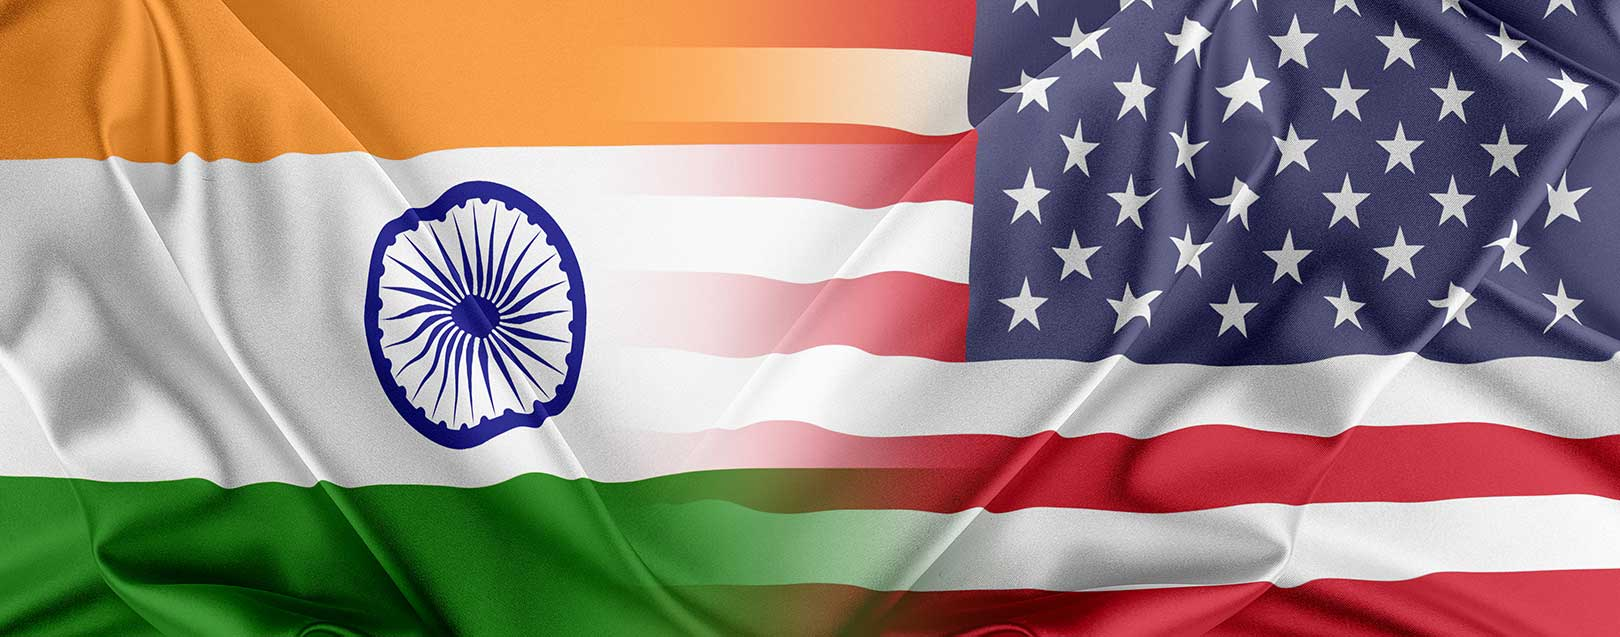 India 'thinking big and moving big' on energy: US Prof to Congress